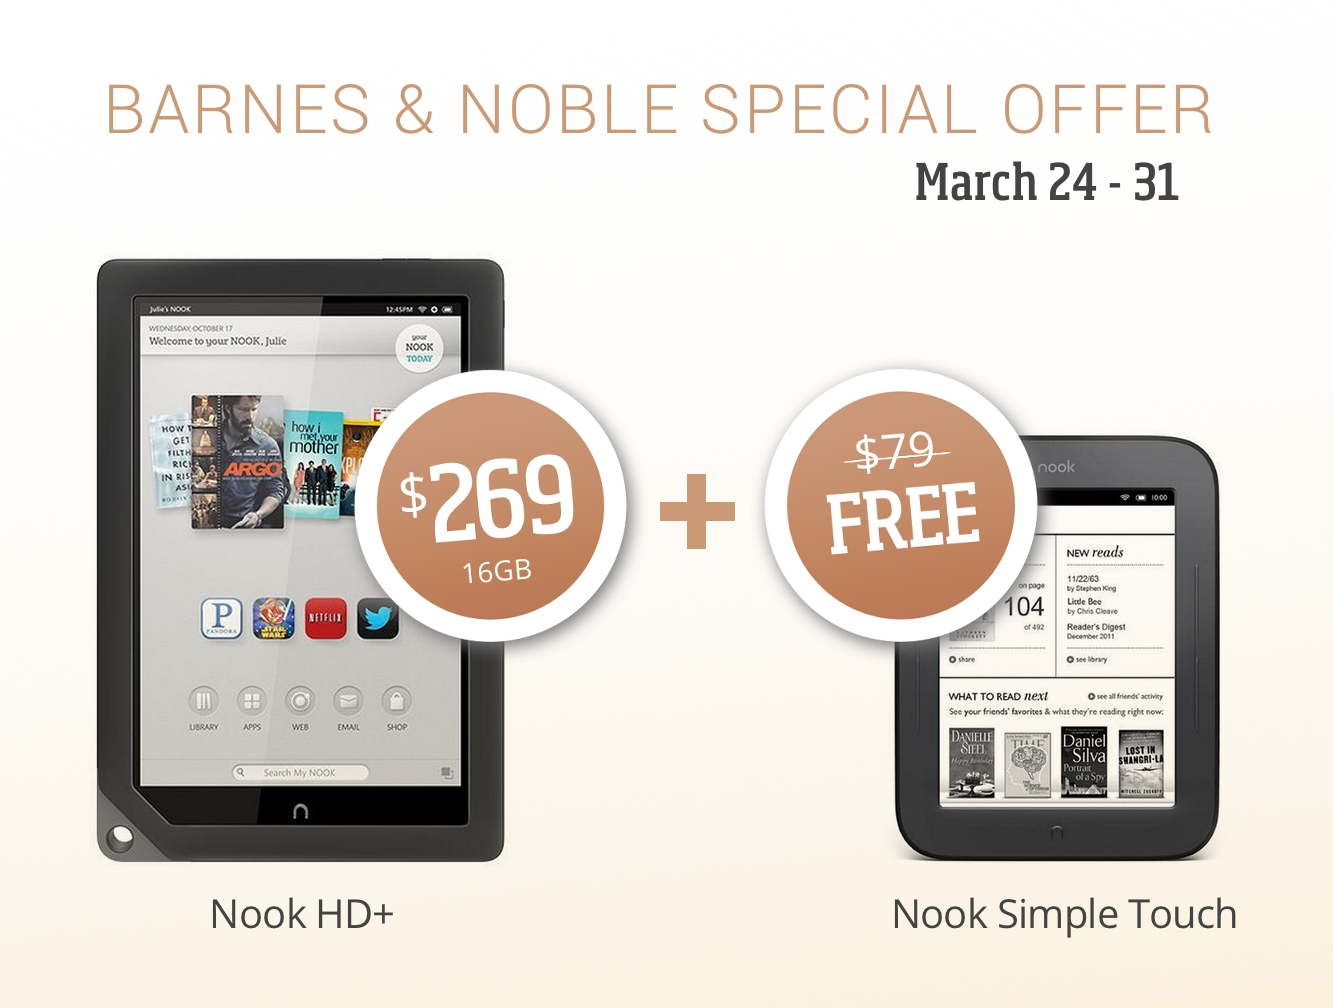 Barnes&Noble special offer: Nook HD+ with Nook Simple Touch for free, worth $79